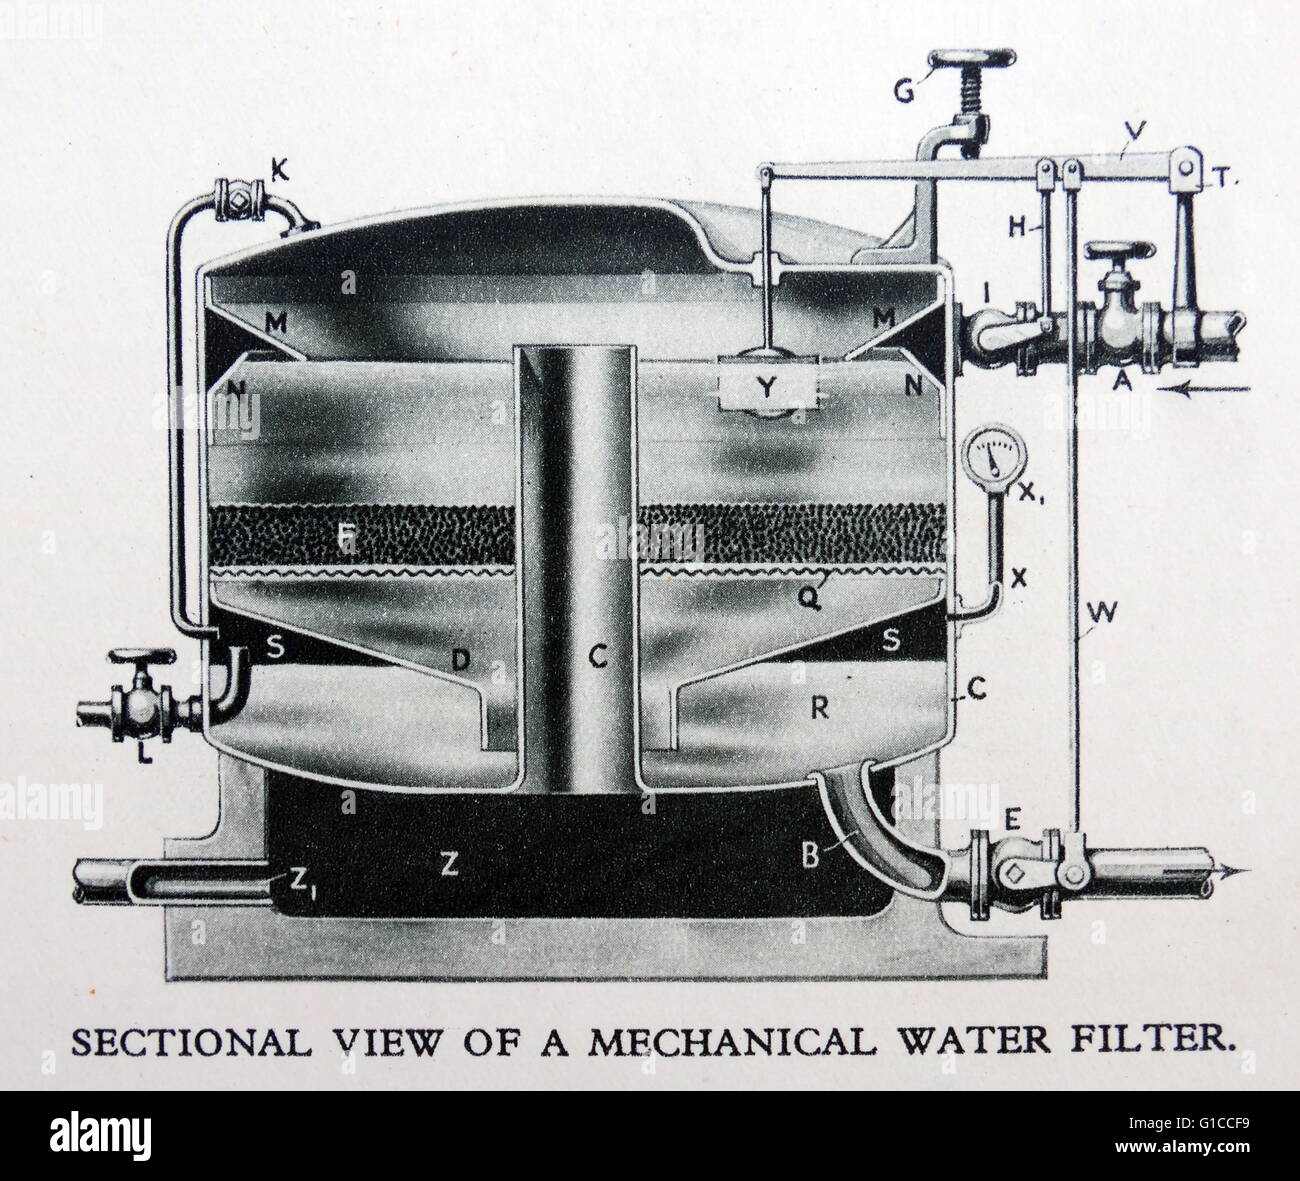 1930's water filter in cutaway diagram - Stock Image